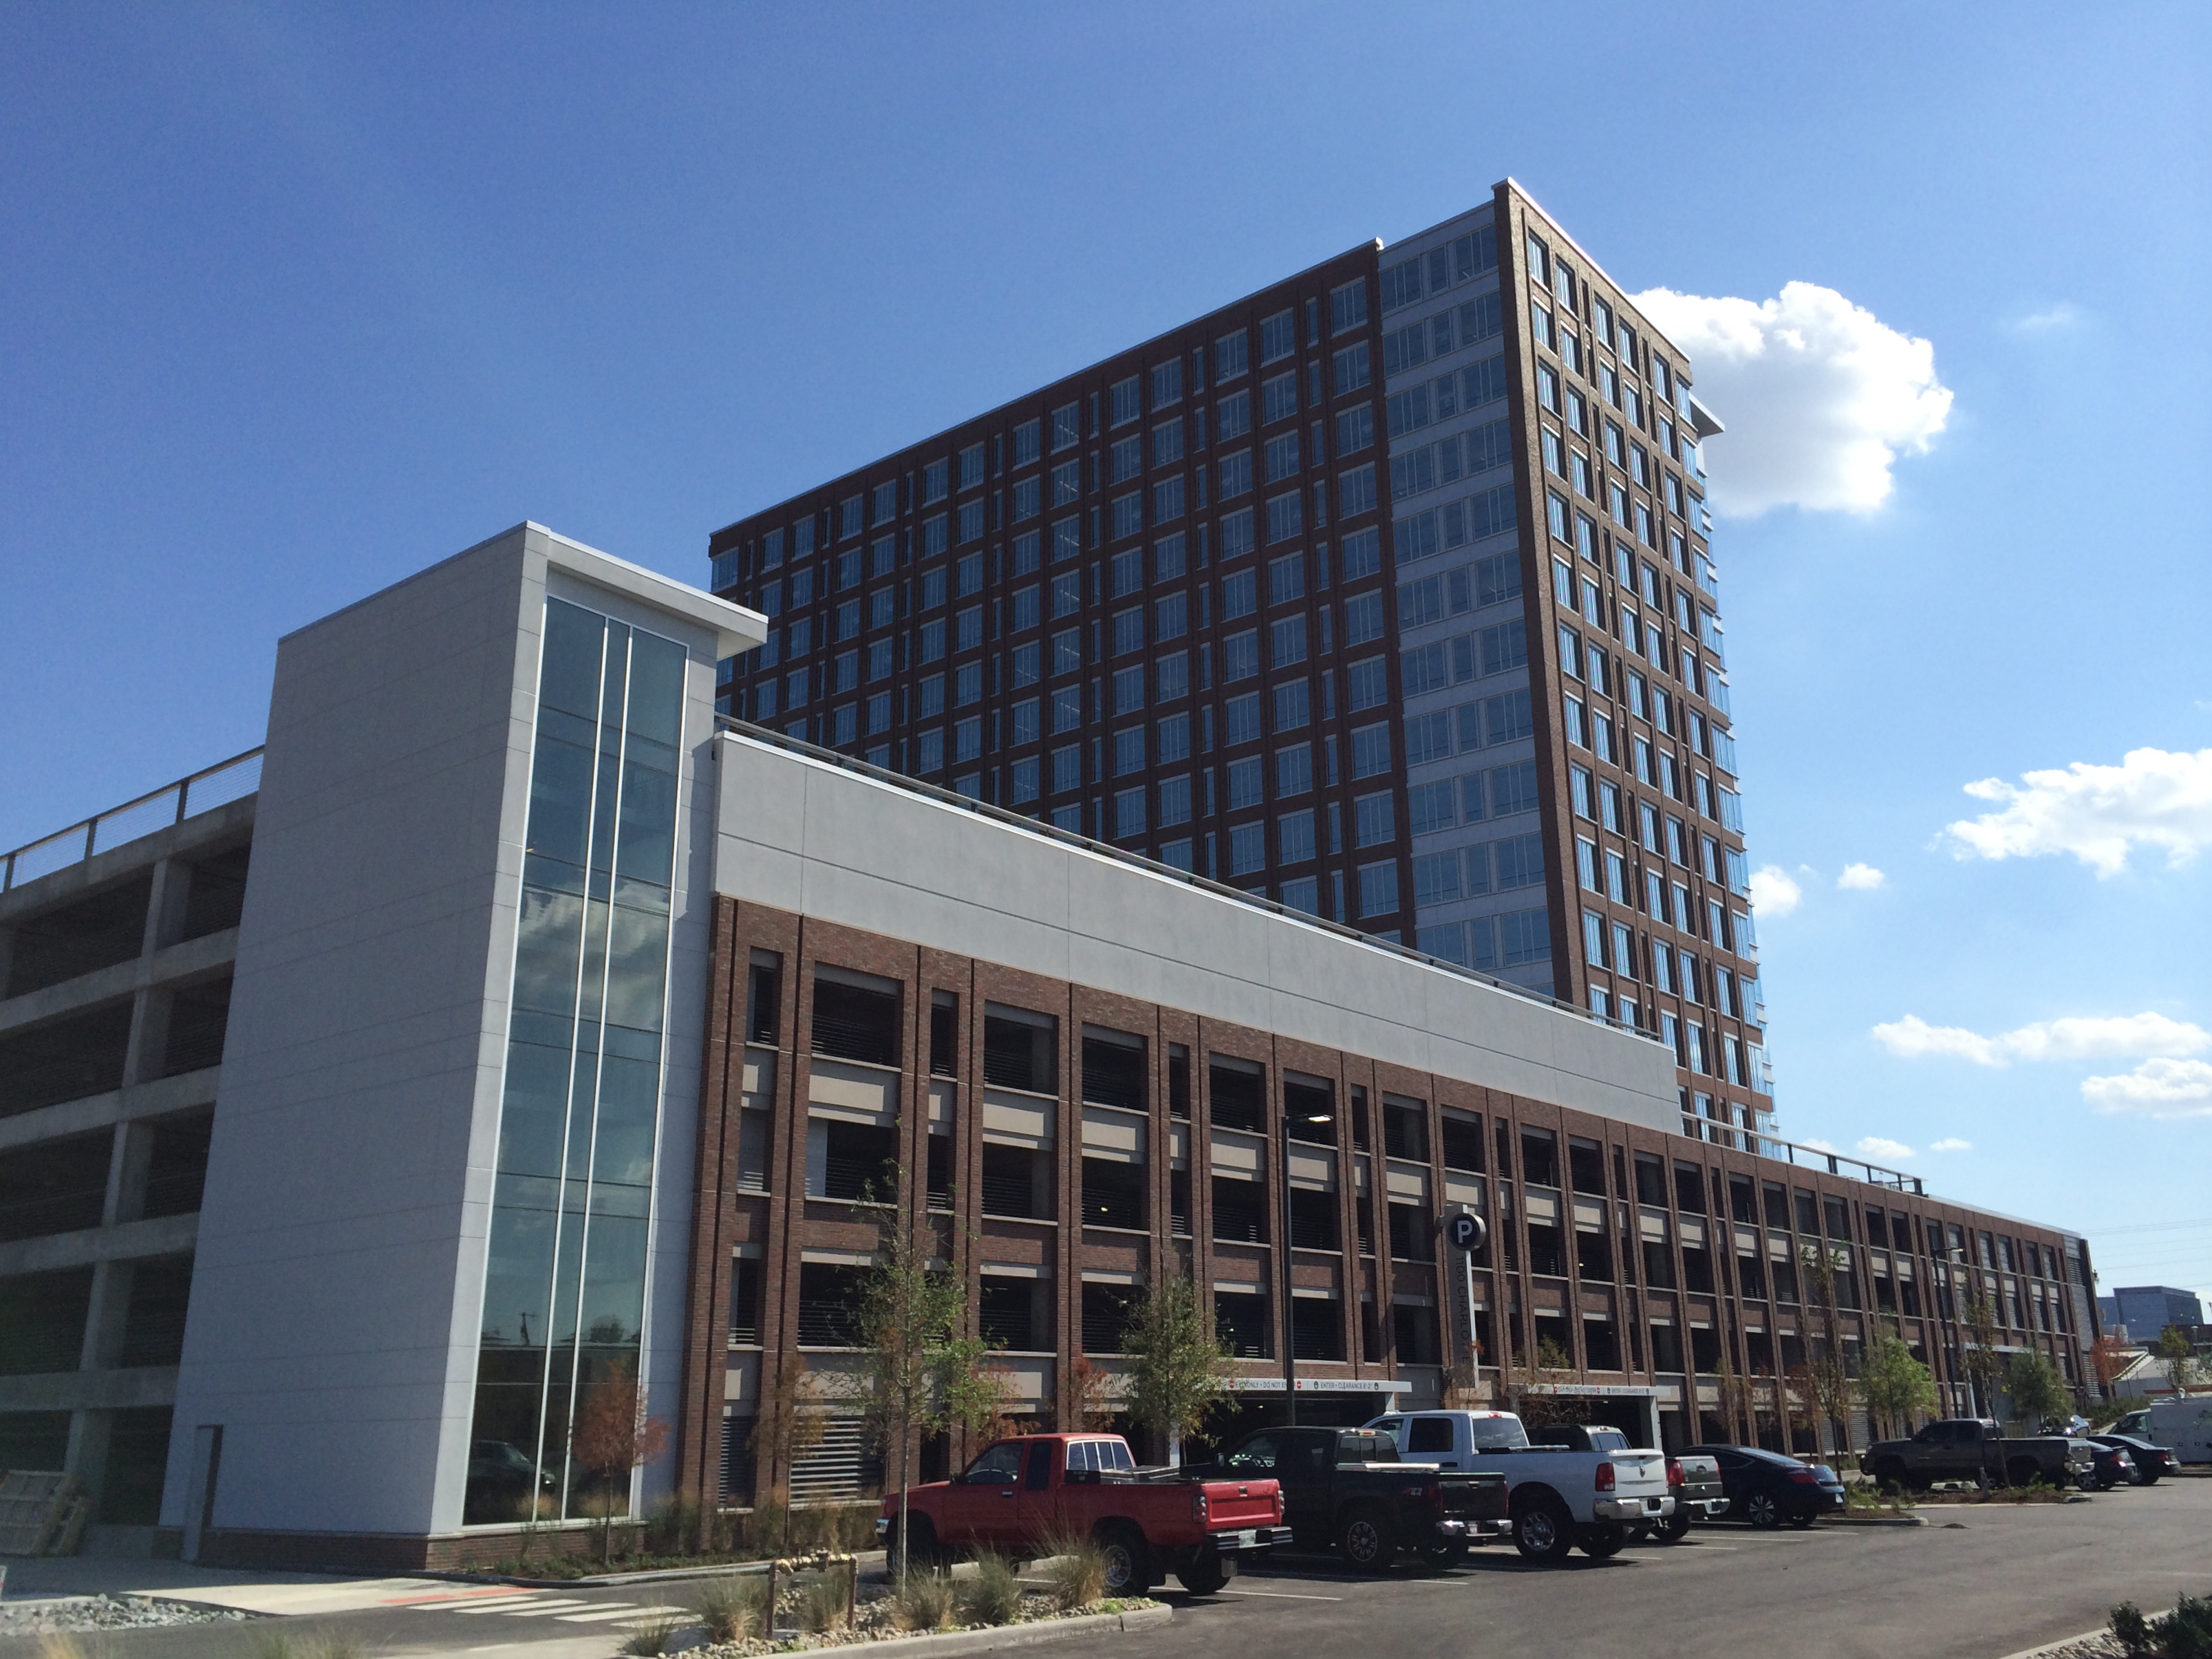 Capitol View Northwestern Mutual Hca 32 Acres Of Mixed Use